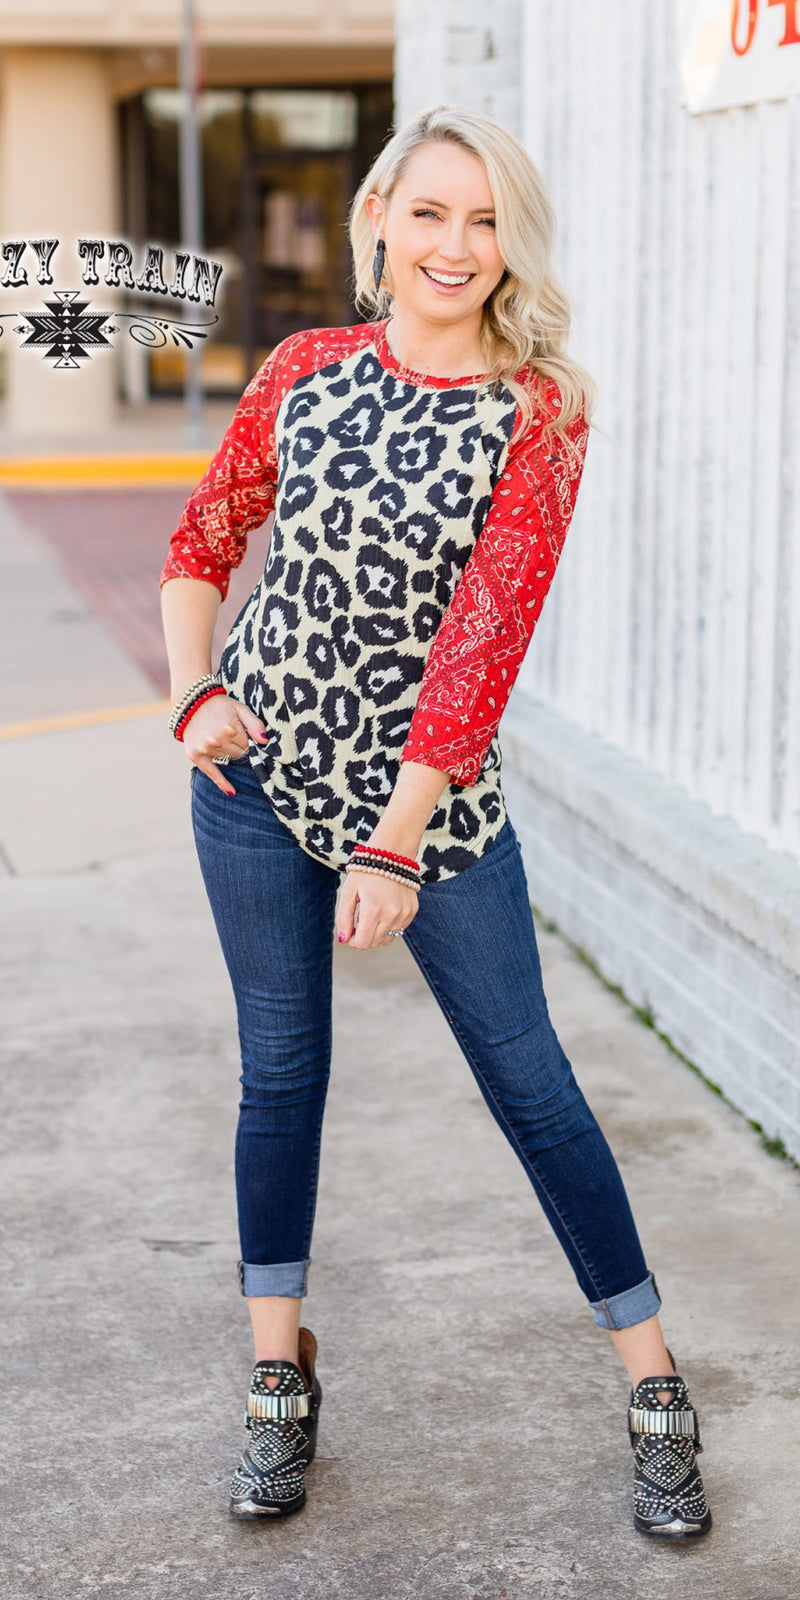 Bandana Babe Leopard Top - Also in Plus Size